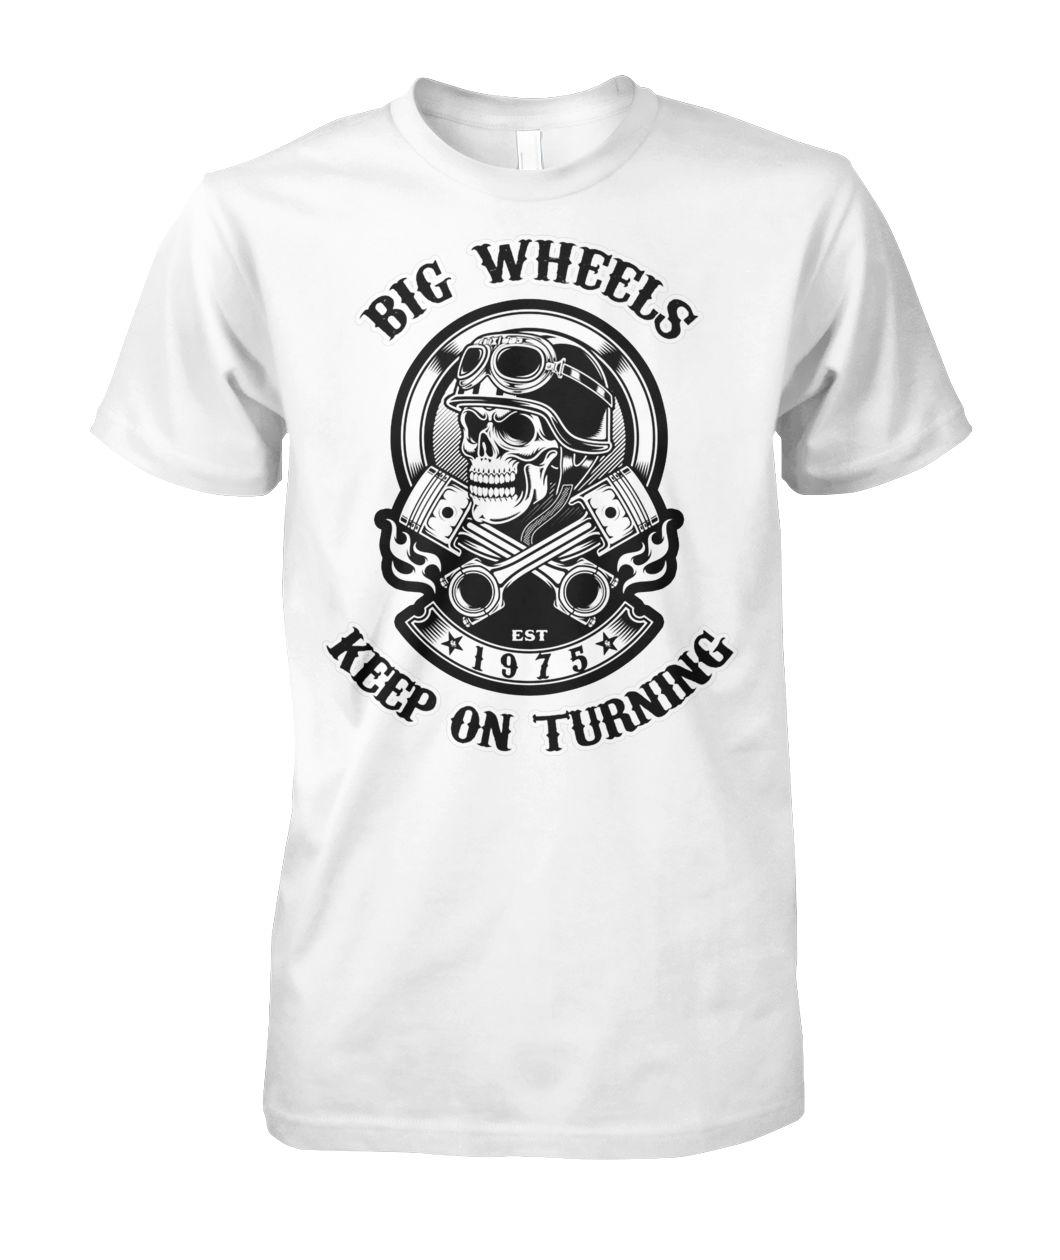 1975 big wheels keep on turning biker skull with crossed pistons unisex cotton tee